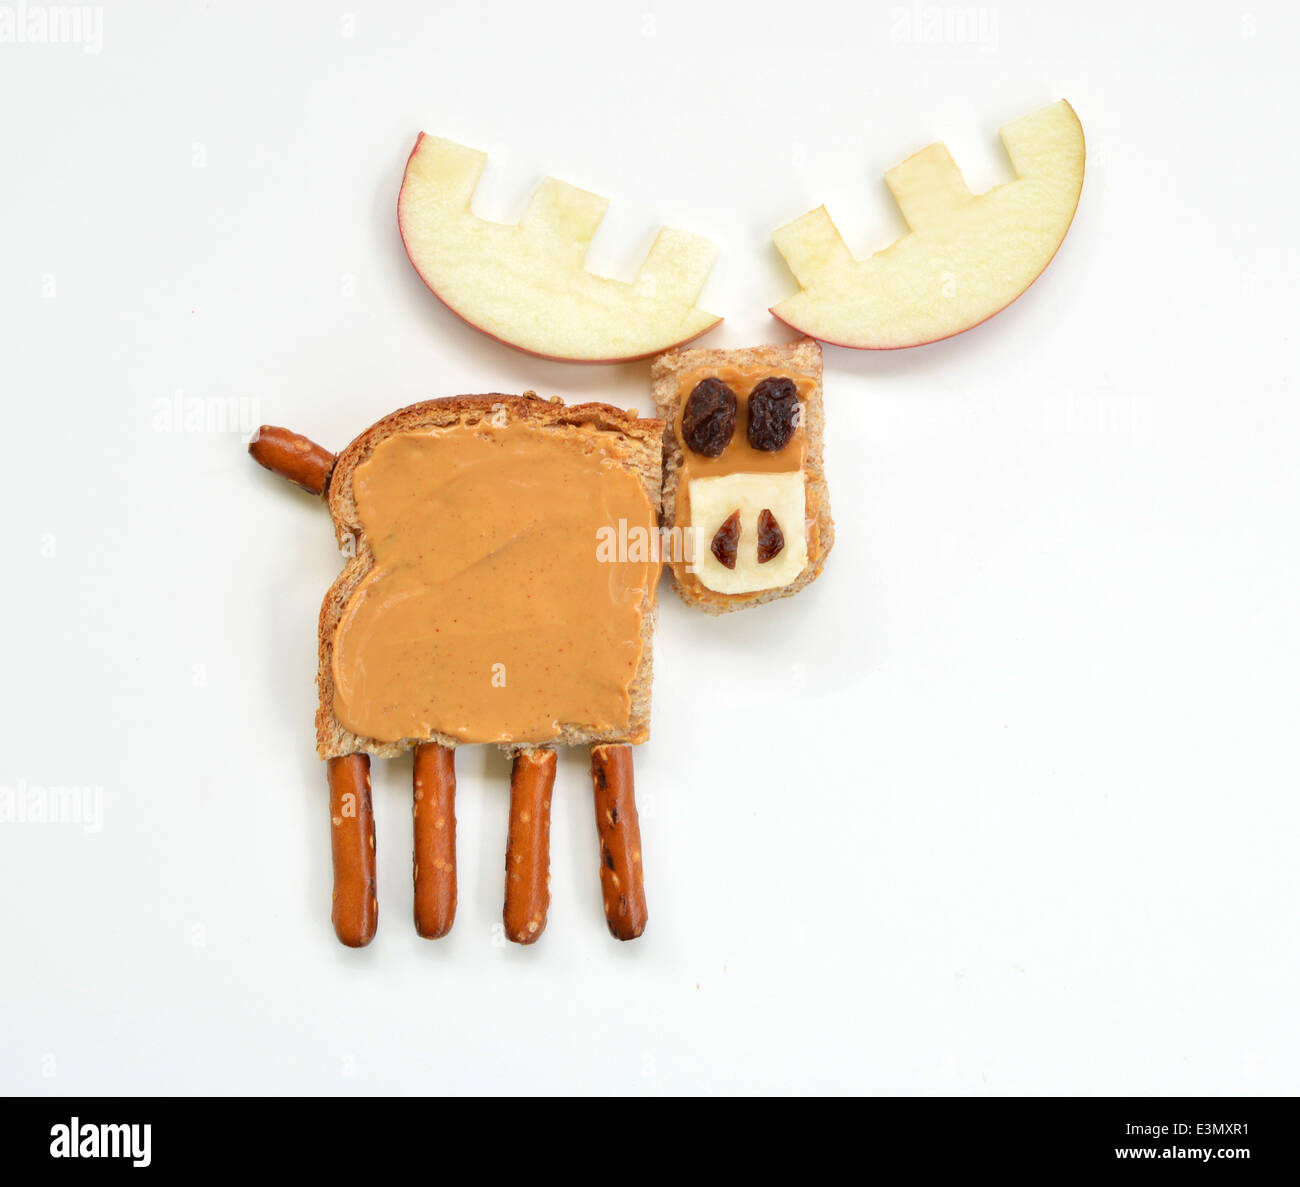 Moose food art - Stock Image